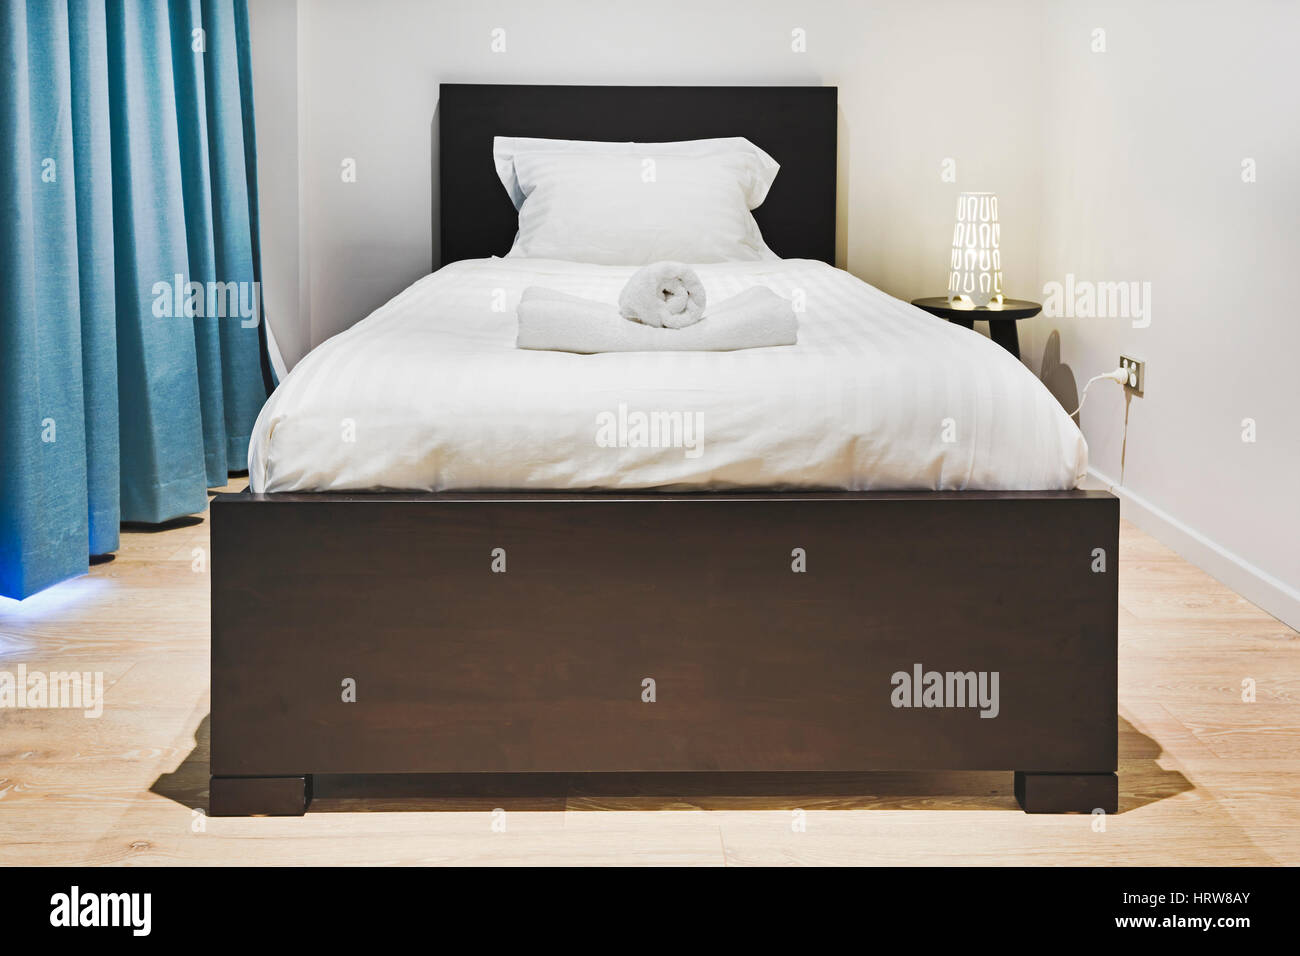 Single Bed With Linen, Bed Side Table And Lamp In A Modern Clean Bedroom